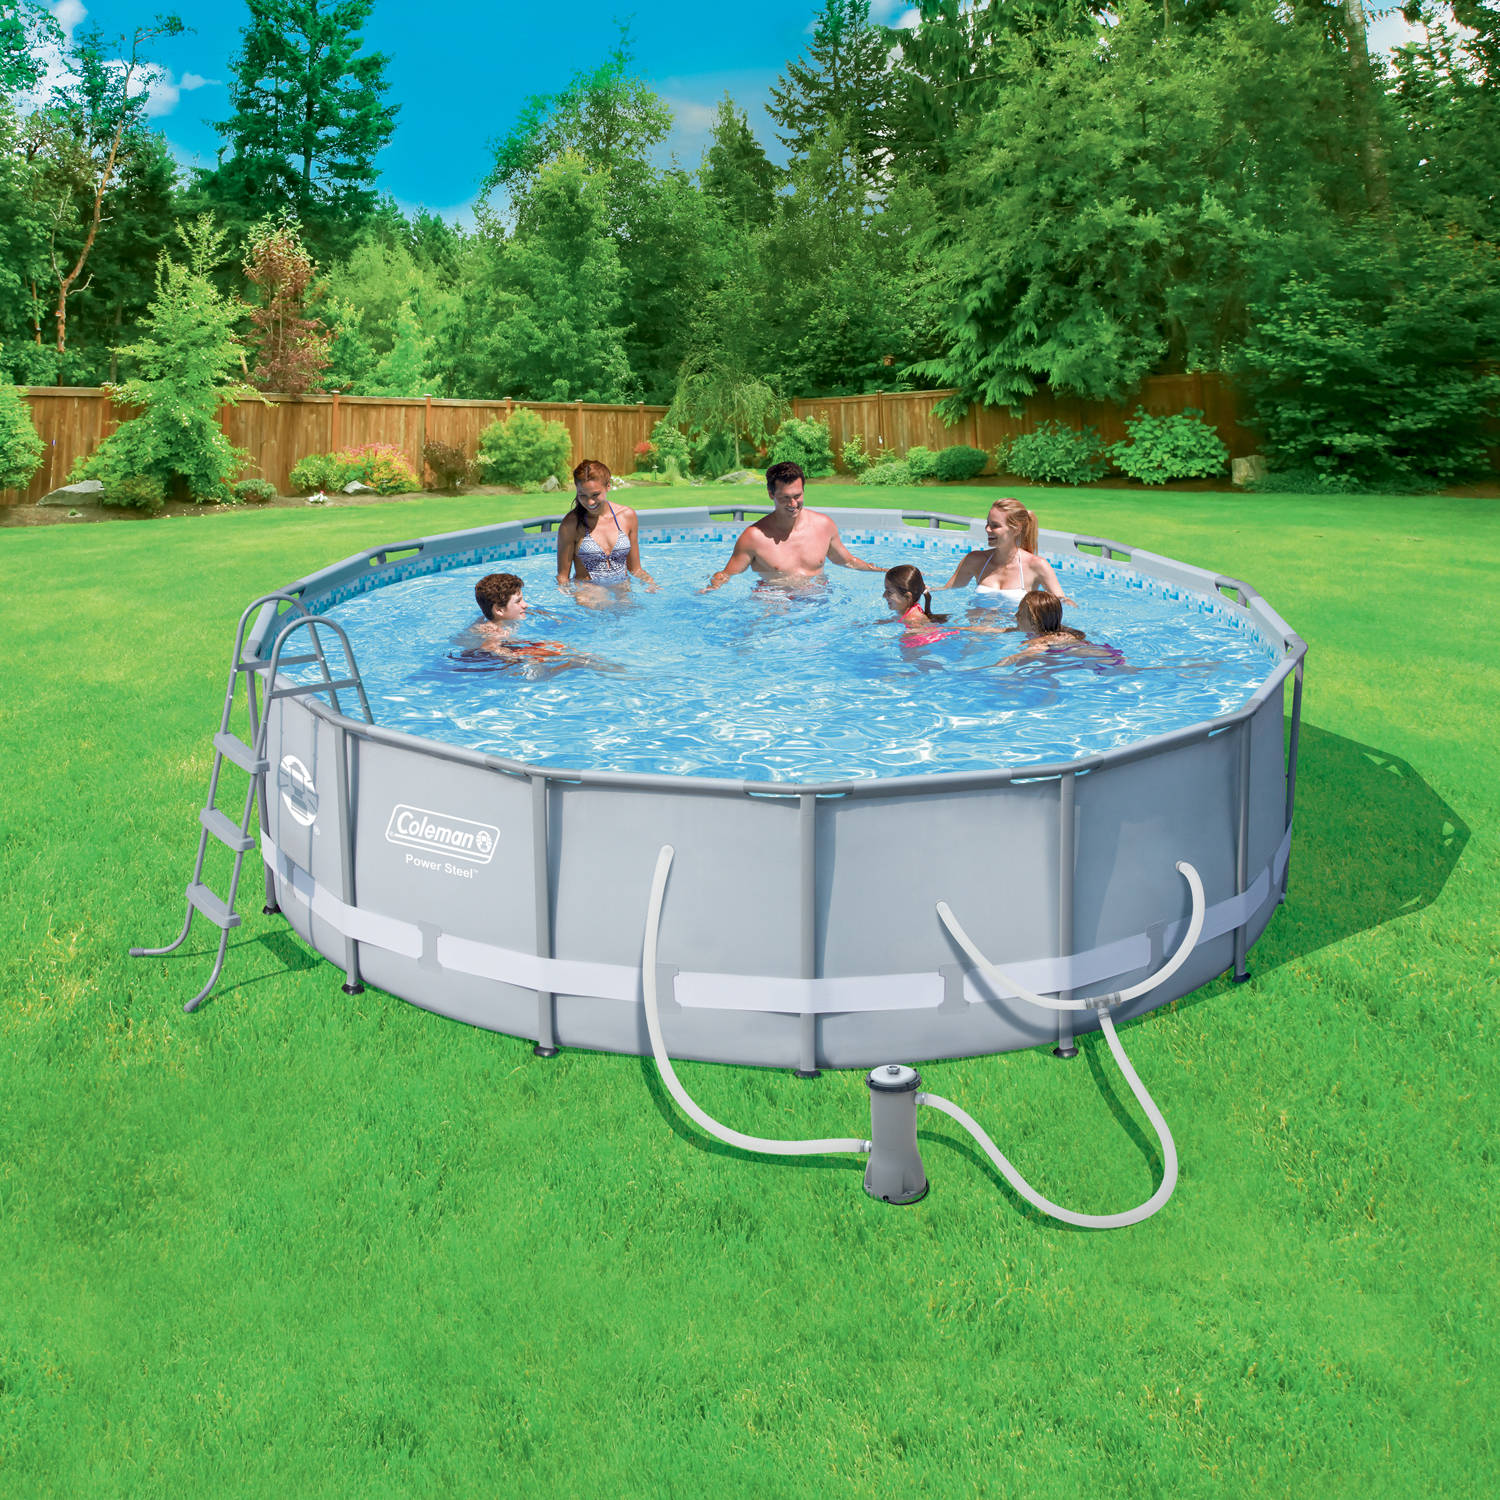 """Coleman Power Steel 14' x 42"""" Frame Pool Set With Filter Pump, Ladder, Cover and Maintenance Kit"""